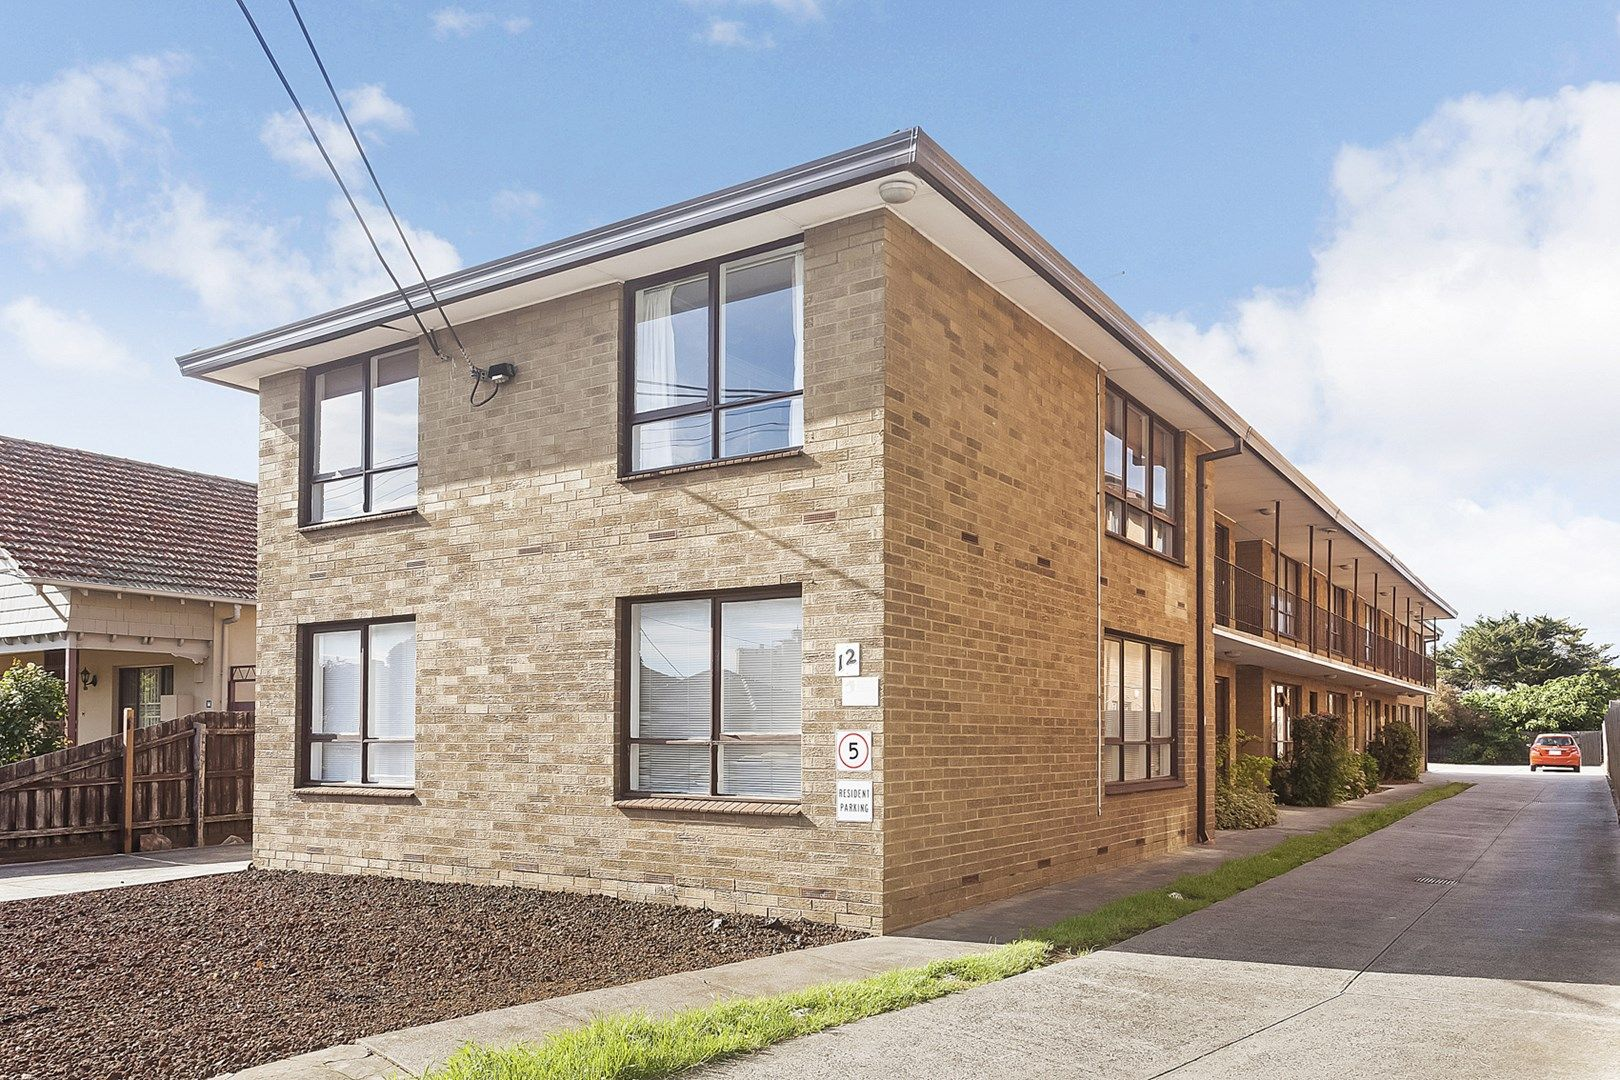 7/12 Carmichael Street, West Footscray VIC 3012, Image 0